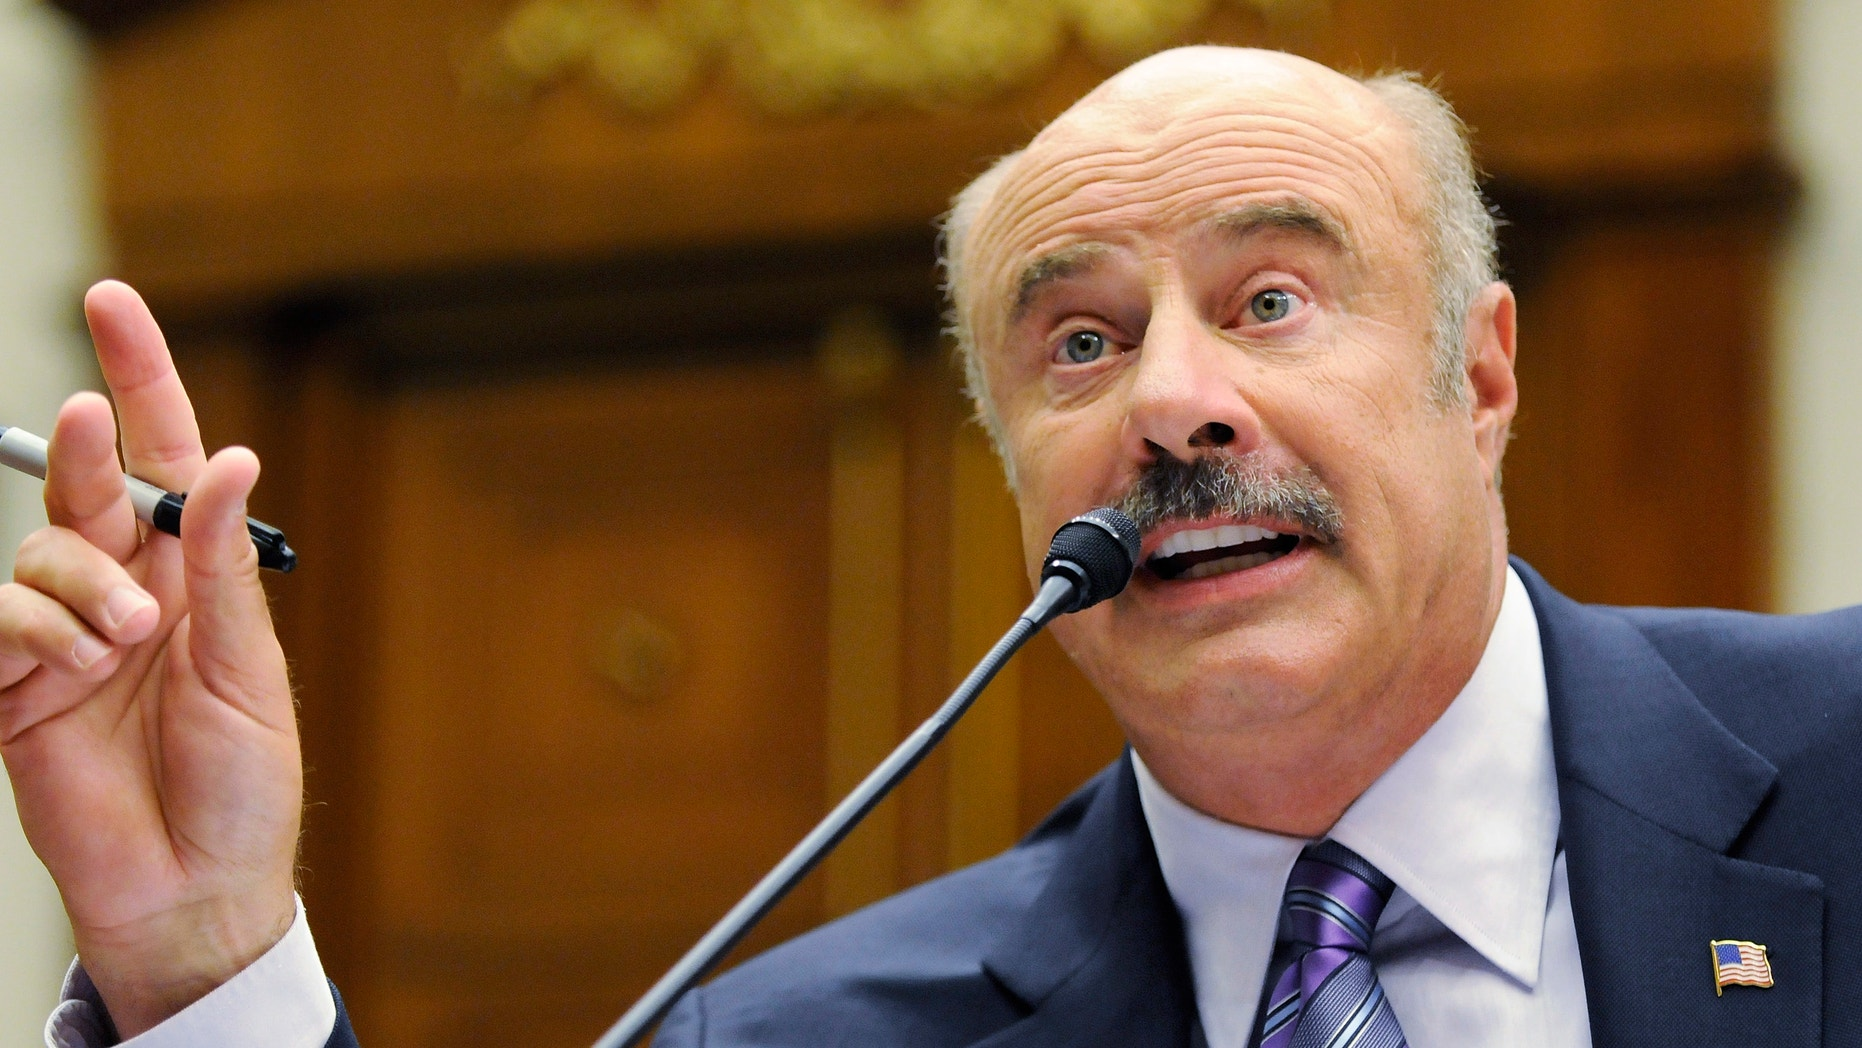 Dr. Phil McGraw, television personality and psychologist, talks about cyber-bullying during a hearing of the Healthy Families and Communities Subcommittee of the U.S. House Committee on Education and Labor, on Capitol Hill in Washington, June 24, 2010.